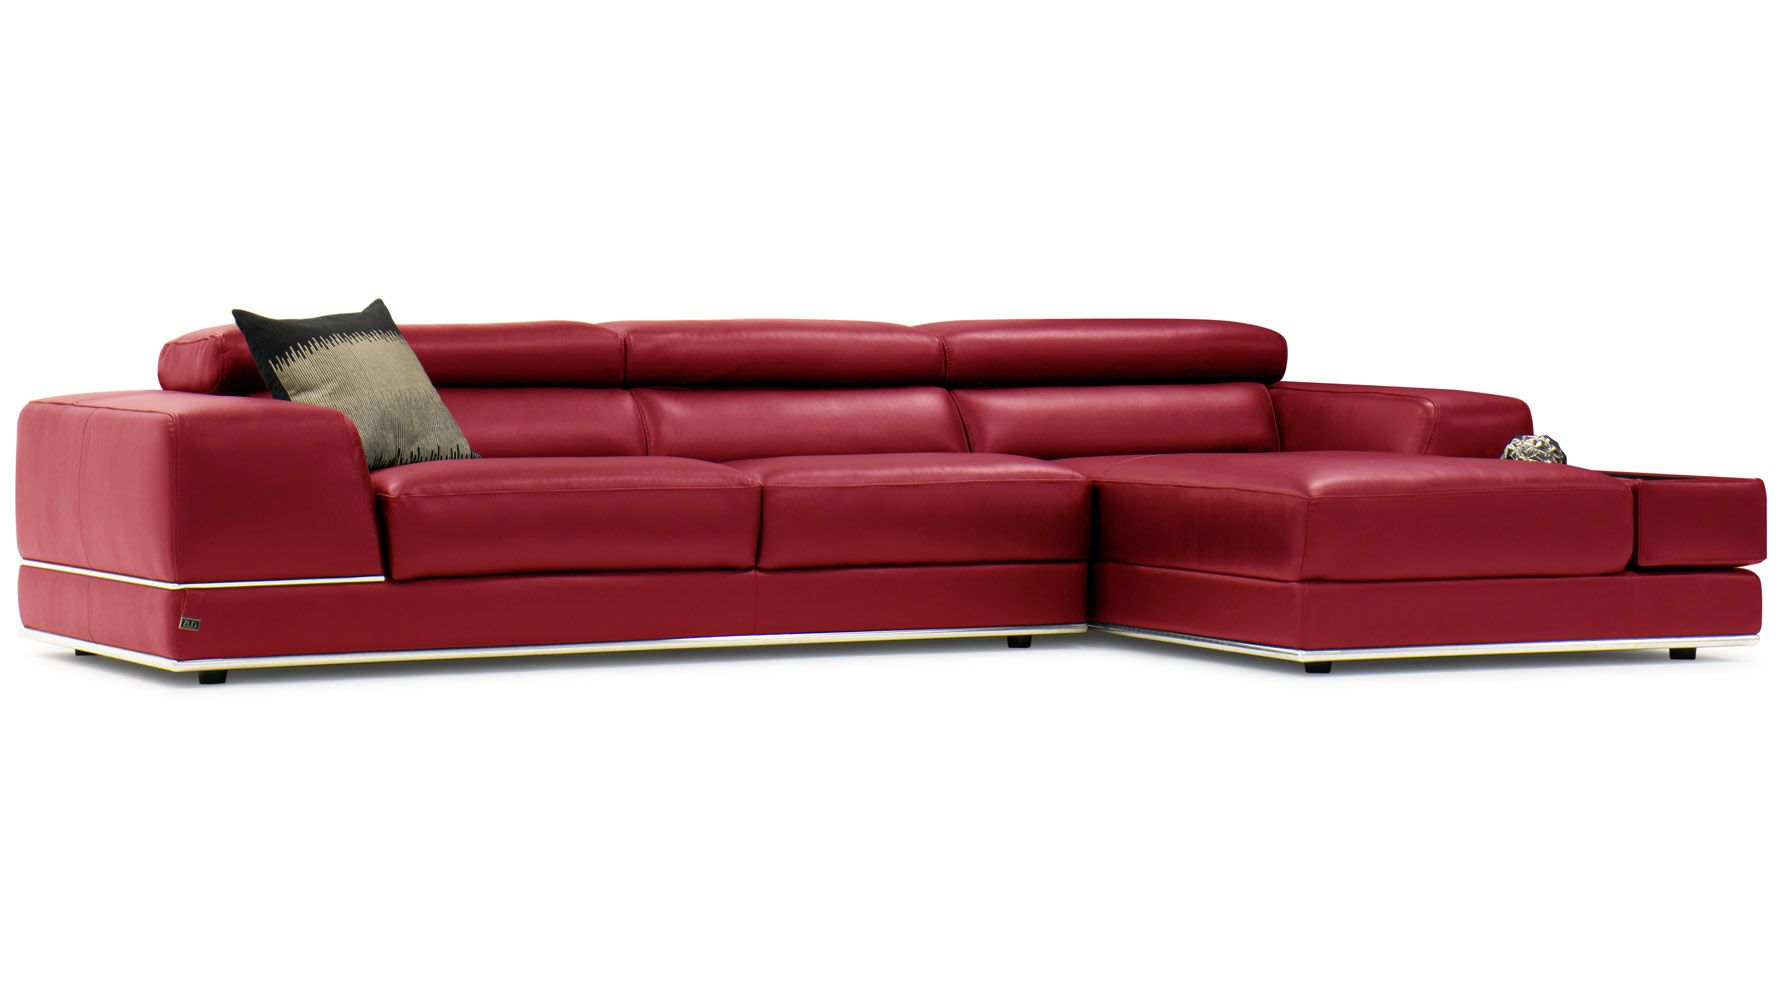 Encore Sectional Red Family Room Leather Couch Sectional